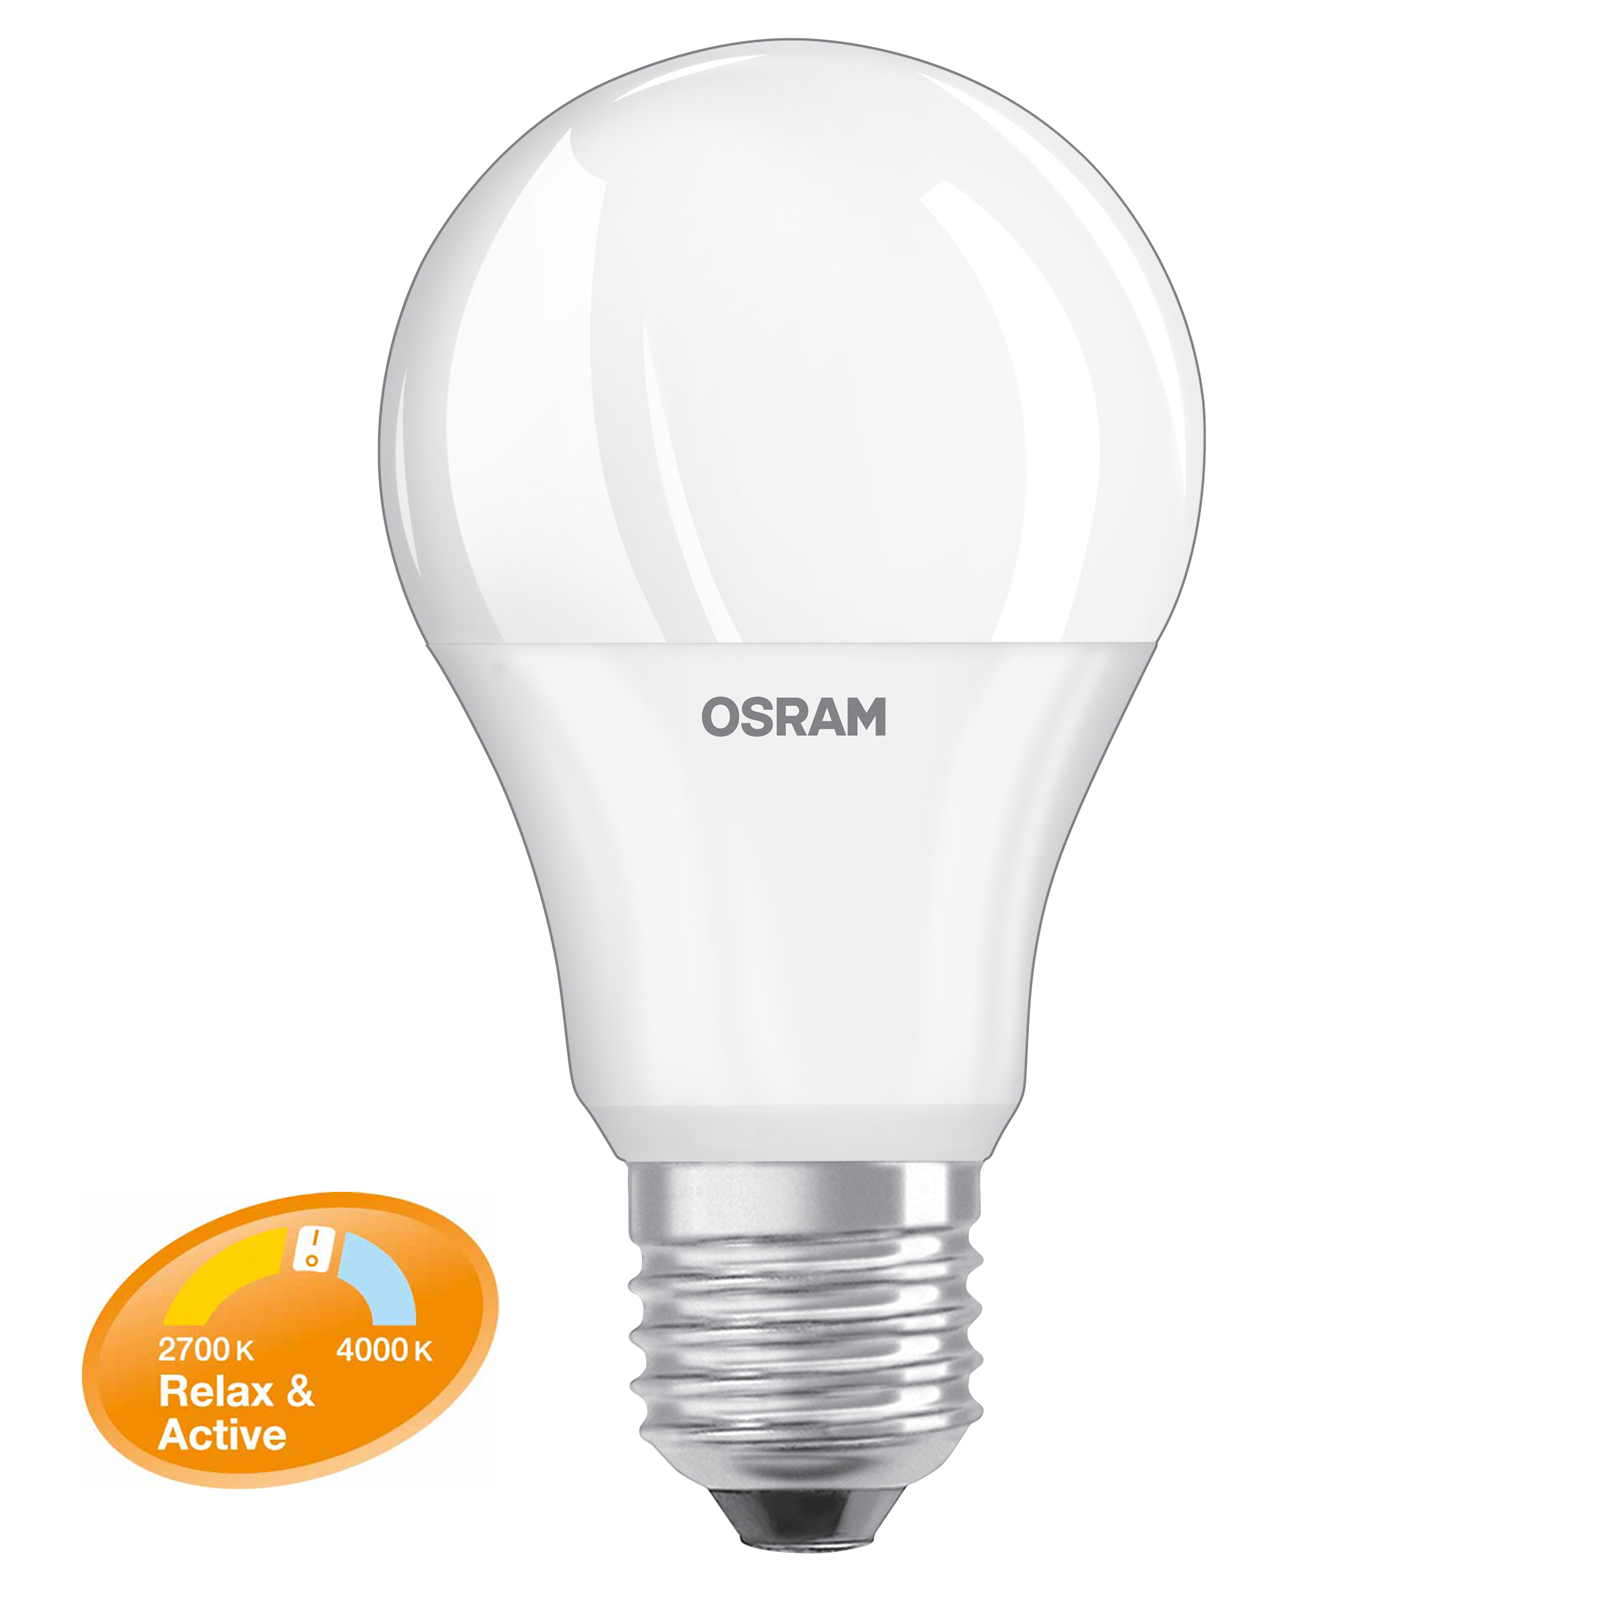 osram led relax active classic a 60 e27 8 watt wie 60 watt 806 lumen. Black Bedroom Furniture Sets. Home Design Ideas